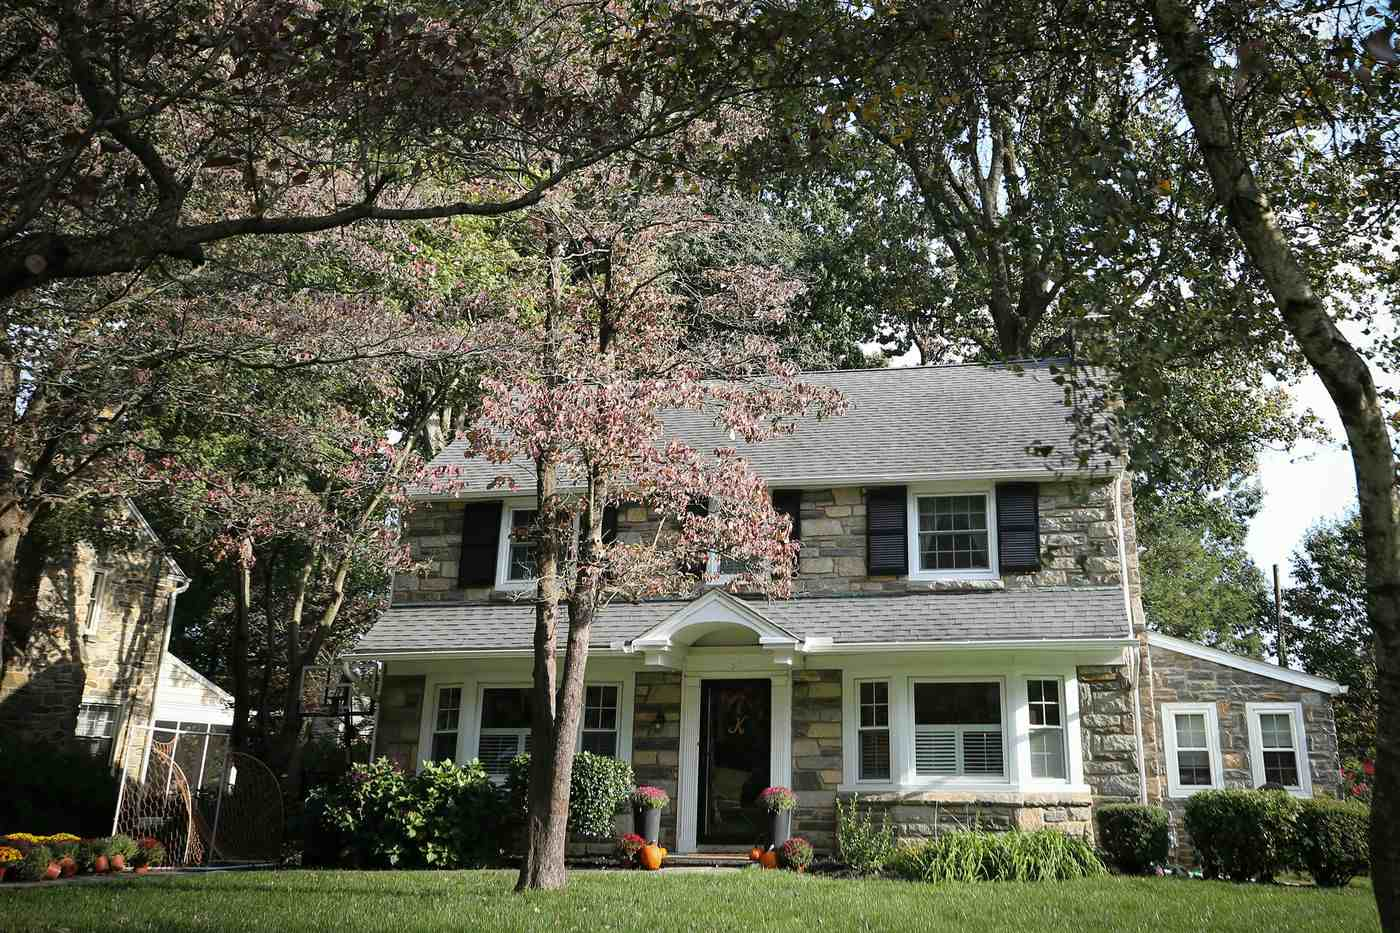 Couple Finds Havertown Colonial With 'Good Bones' and Gets to Work on Its Old World Charm